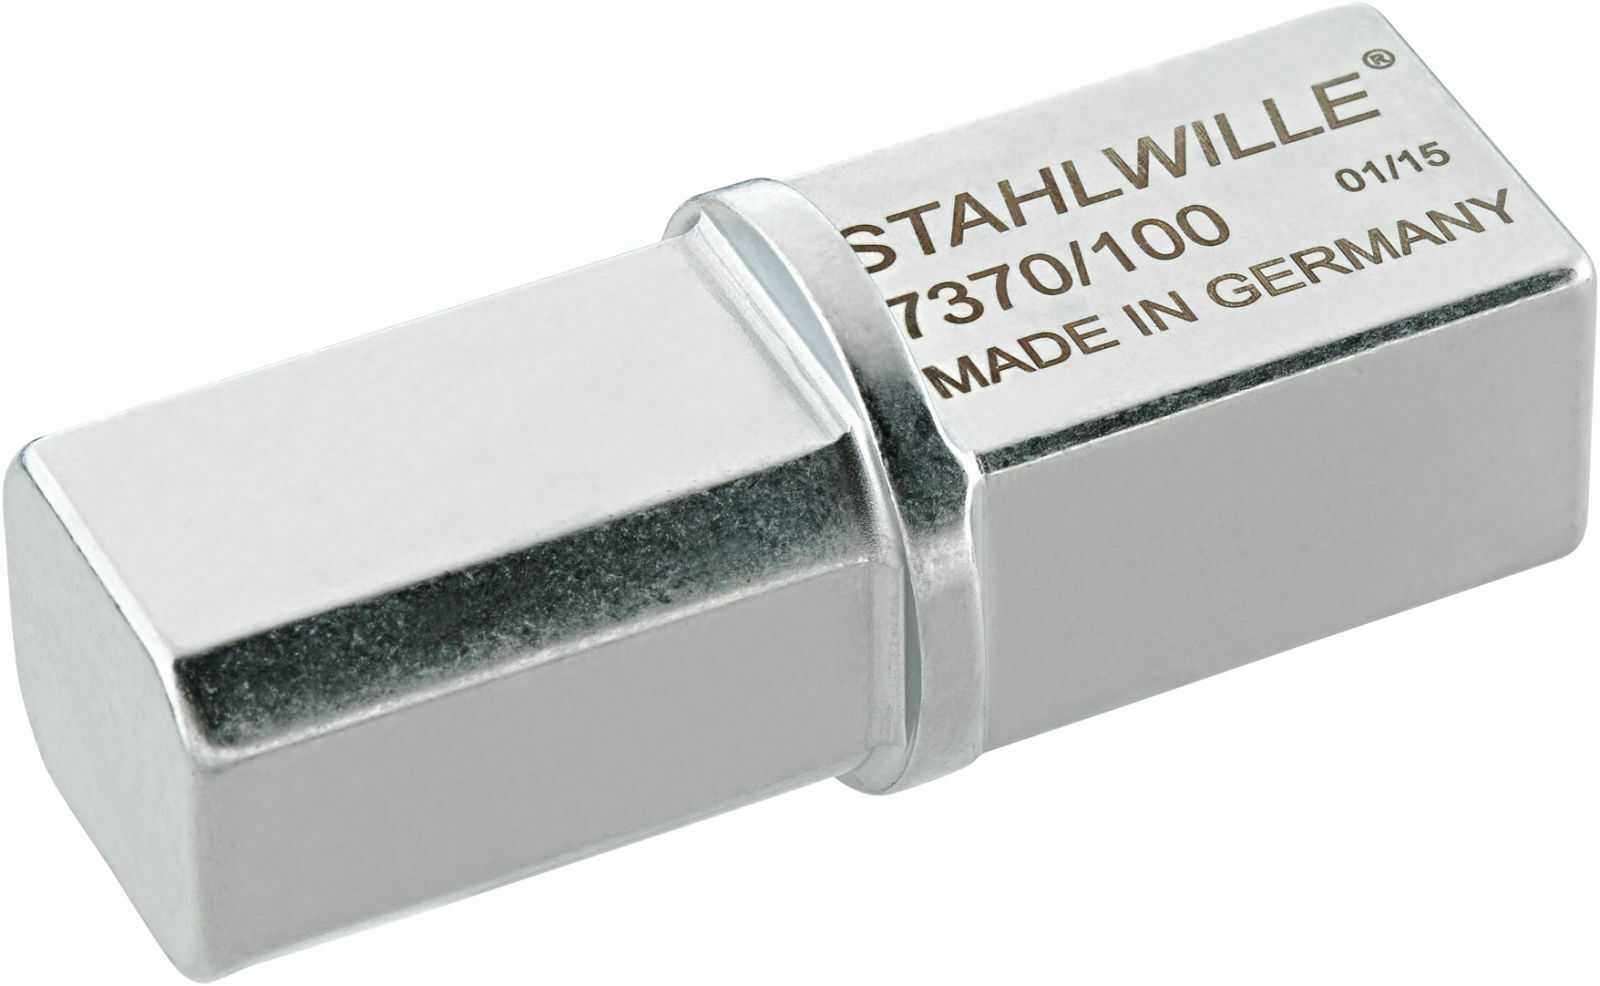 Stahlwille ADAPTOR FOR TORQUE WRENCH 58291100